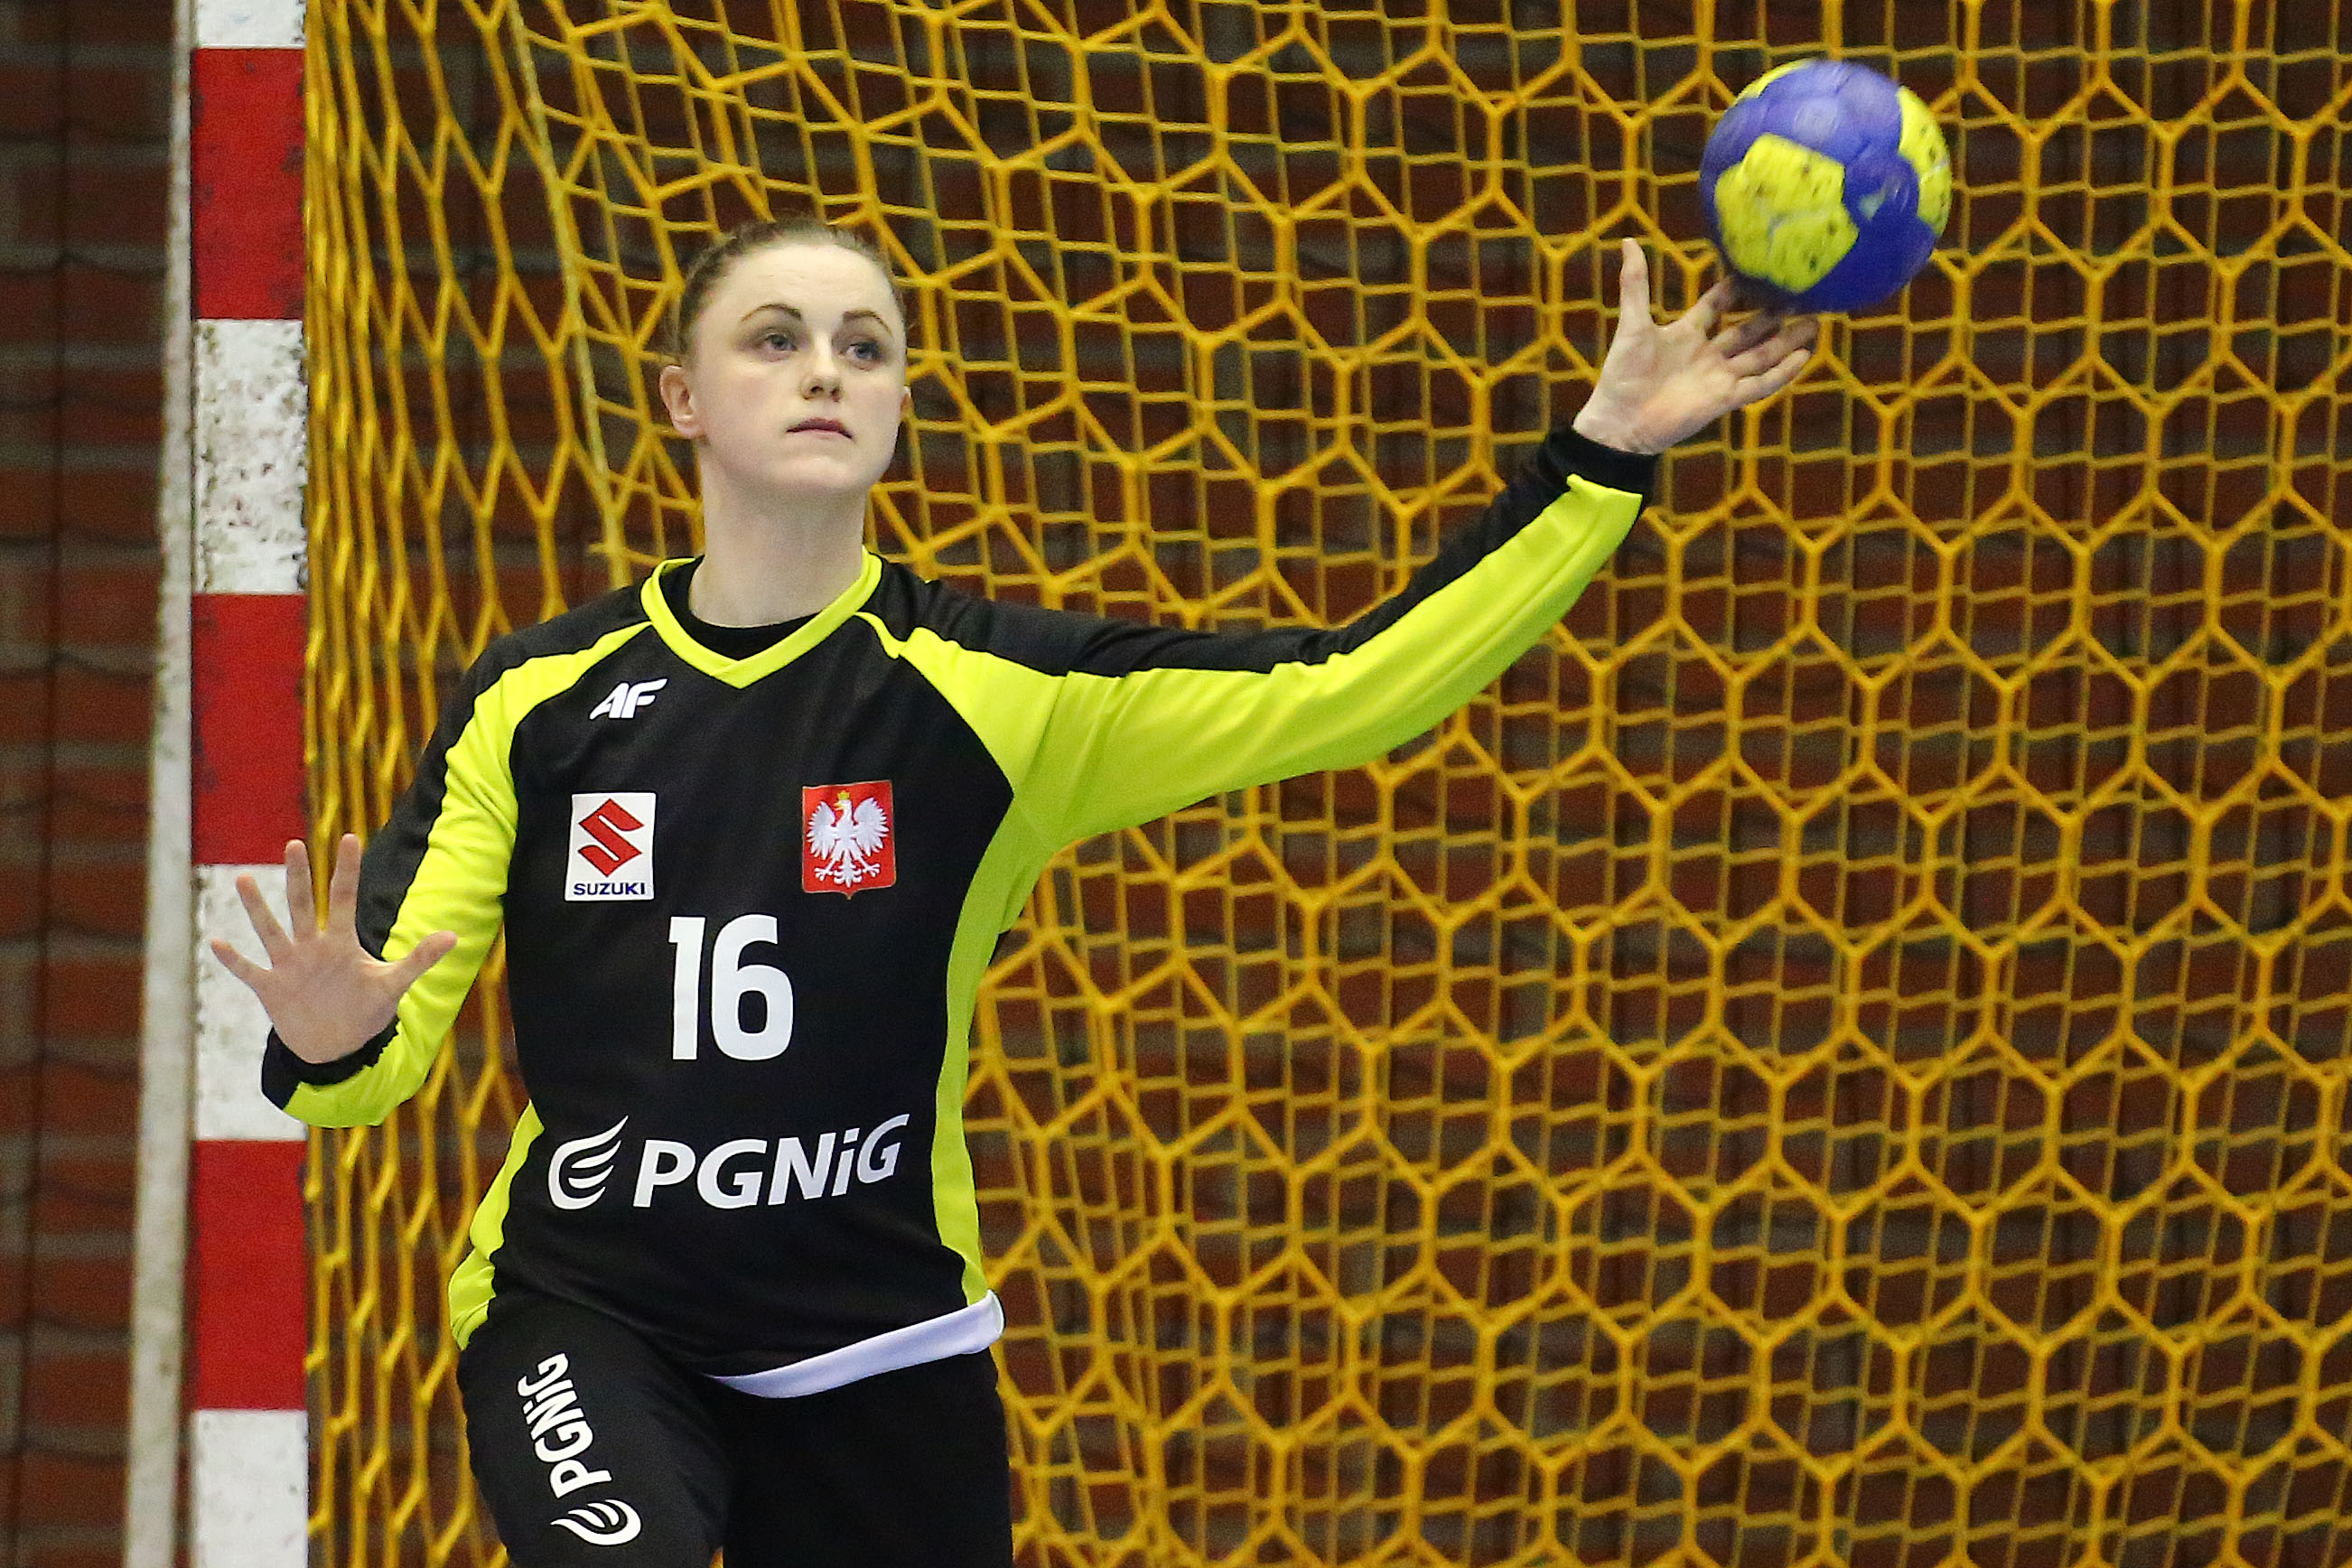 2017.03.18 Gdansk Pilka Reczna Kobiet Turniej Miedzynarodowy Mecz Polska - Ukraina N/z Adrianna Placzek Foto Piotr Matusewicz / PressFocus 2017.03.18 Gdansk Women handball International Tournament Poland - Ukraine Adrianna Placzek Credit: Piotr Matusewicz / PressFocus